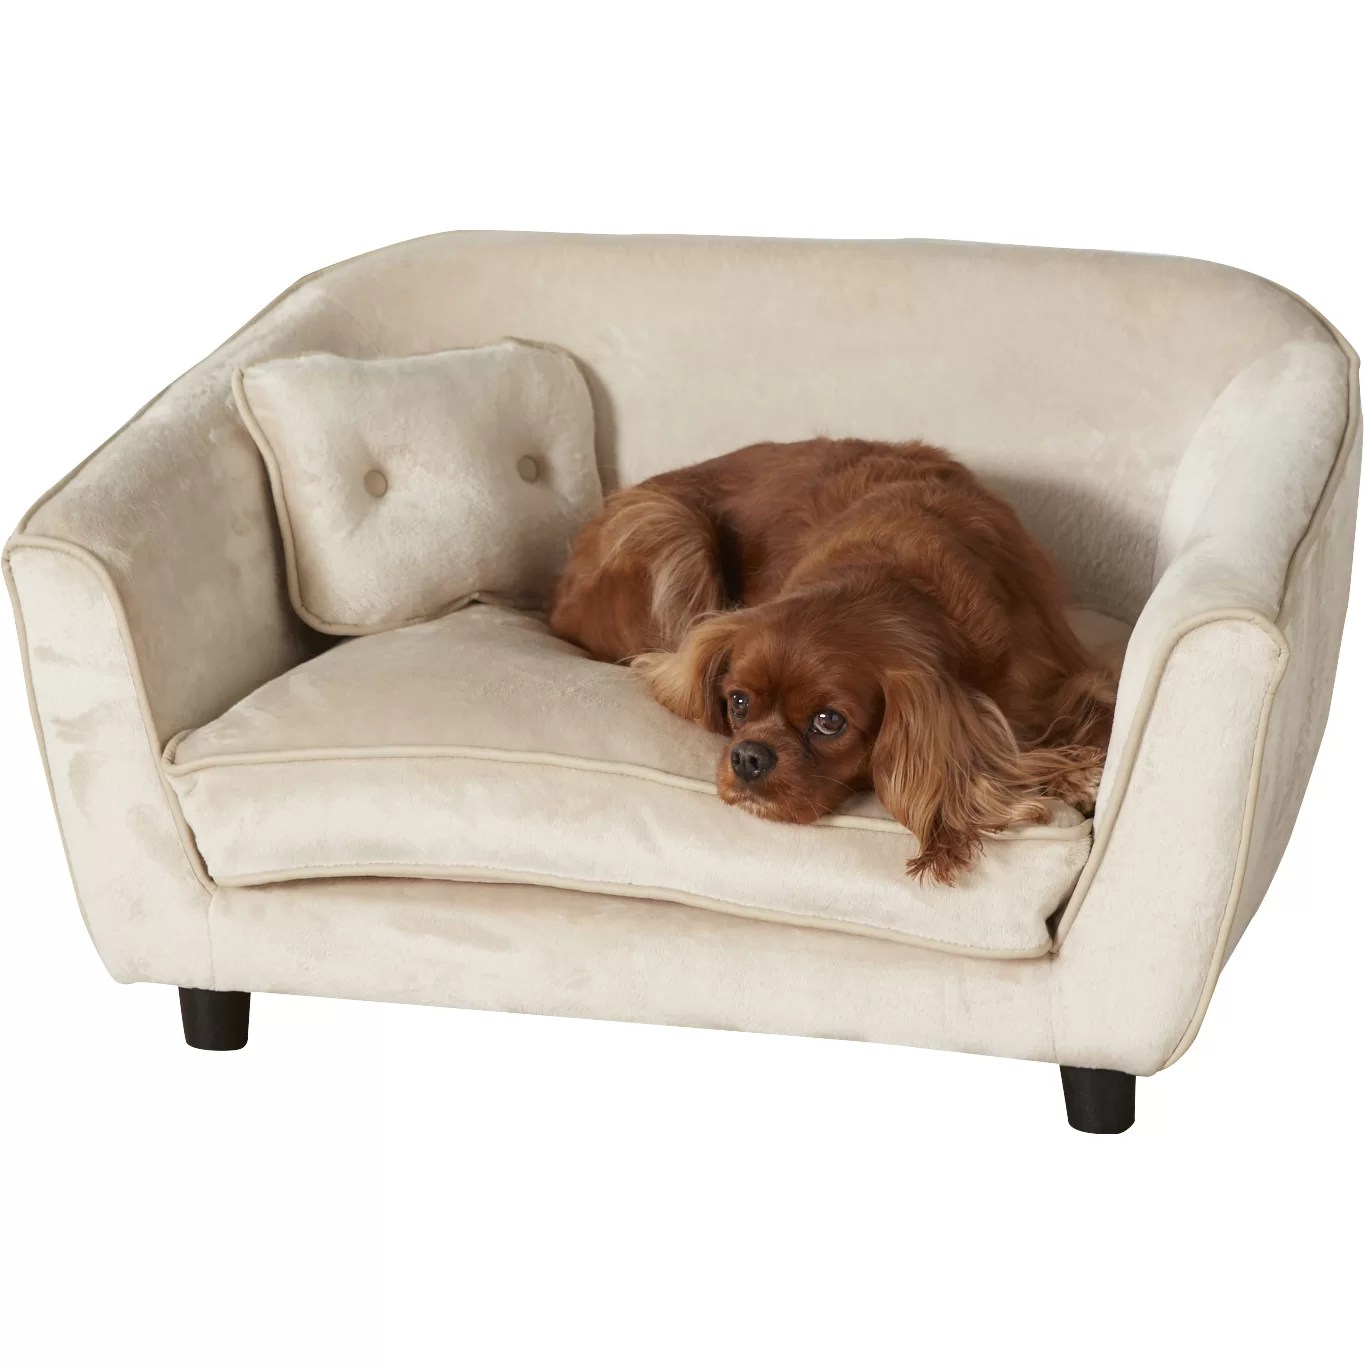 sofa for dog standard dimensions enchanted home pet ultra plush large astro